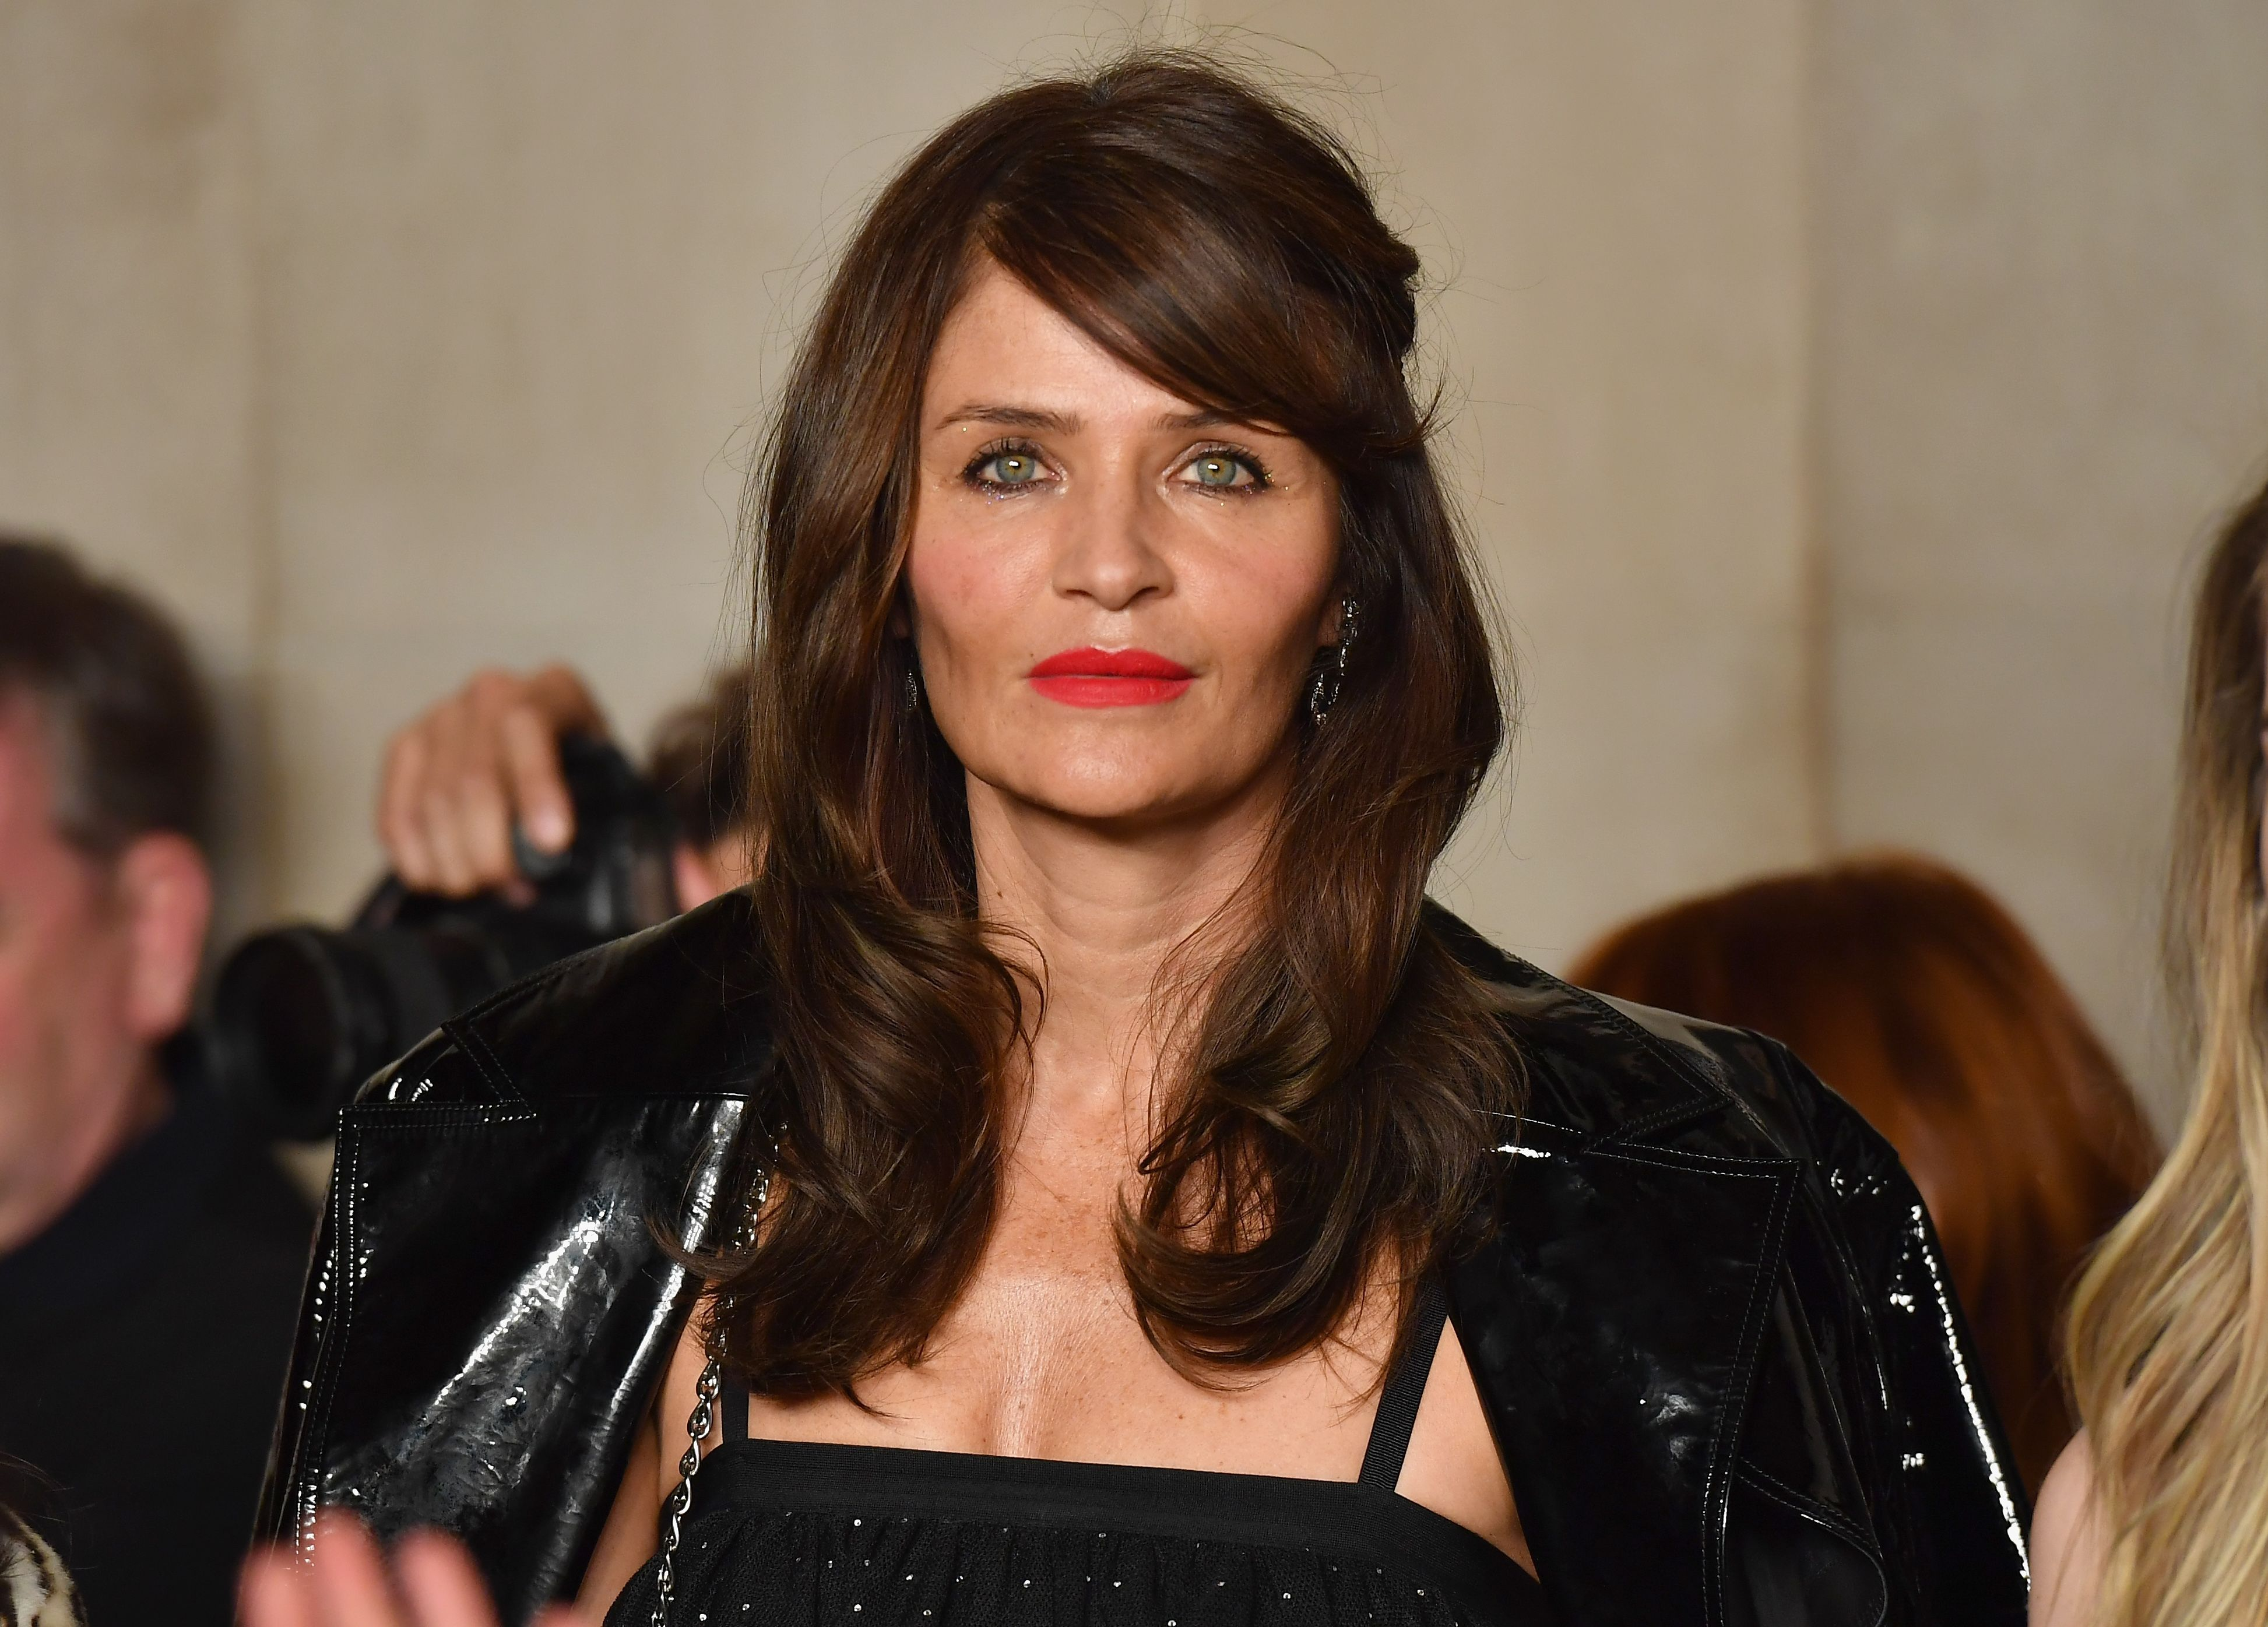 Helena Christensen, 50, Shares Topless Photo Showing Off Toned Abs On Instagram